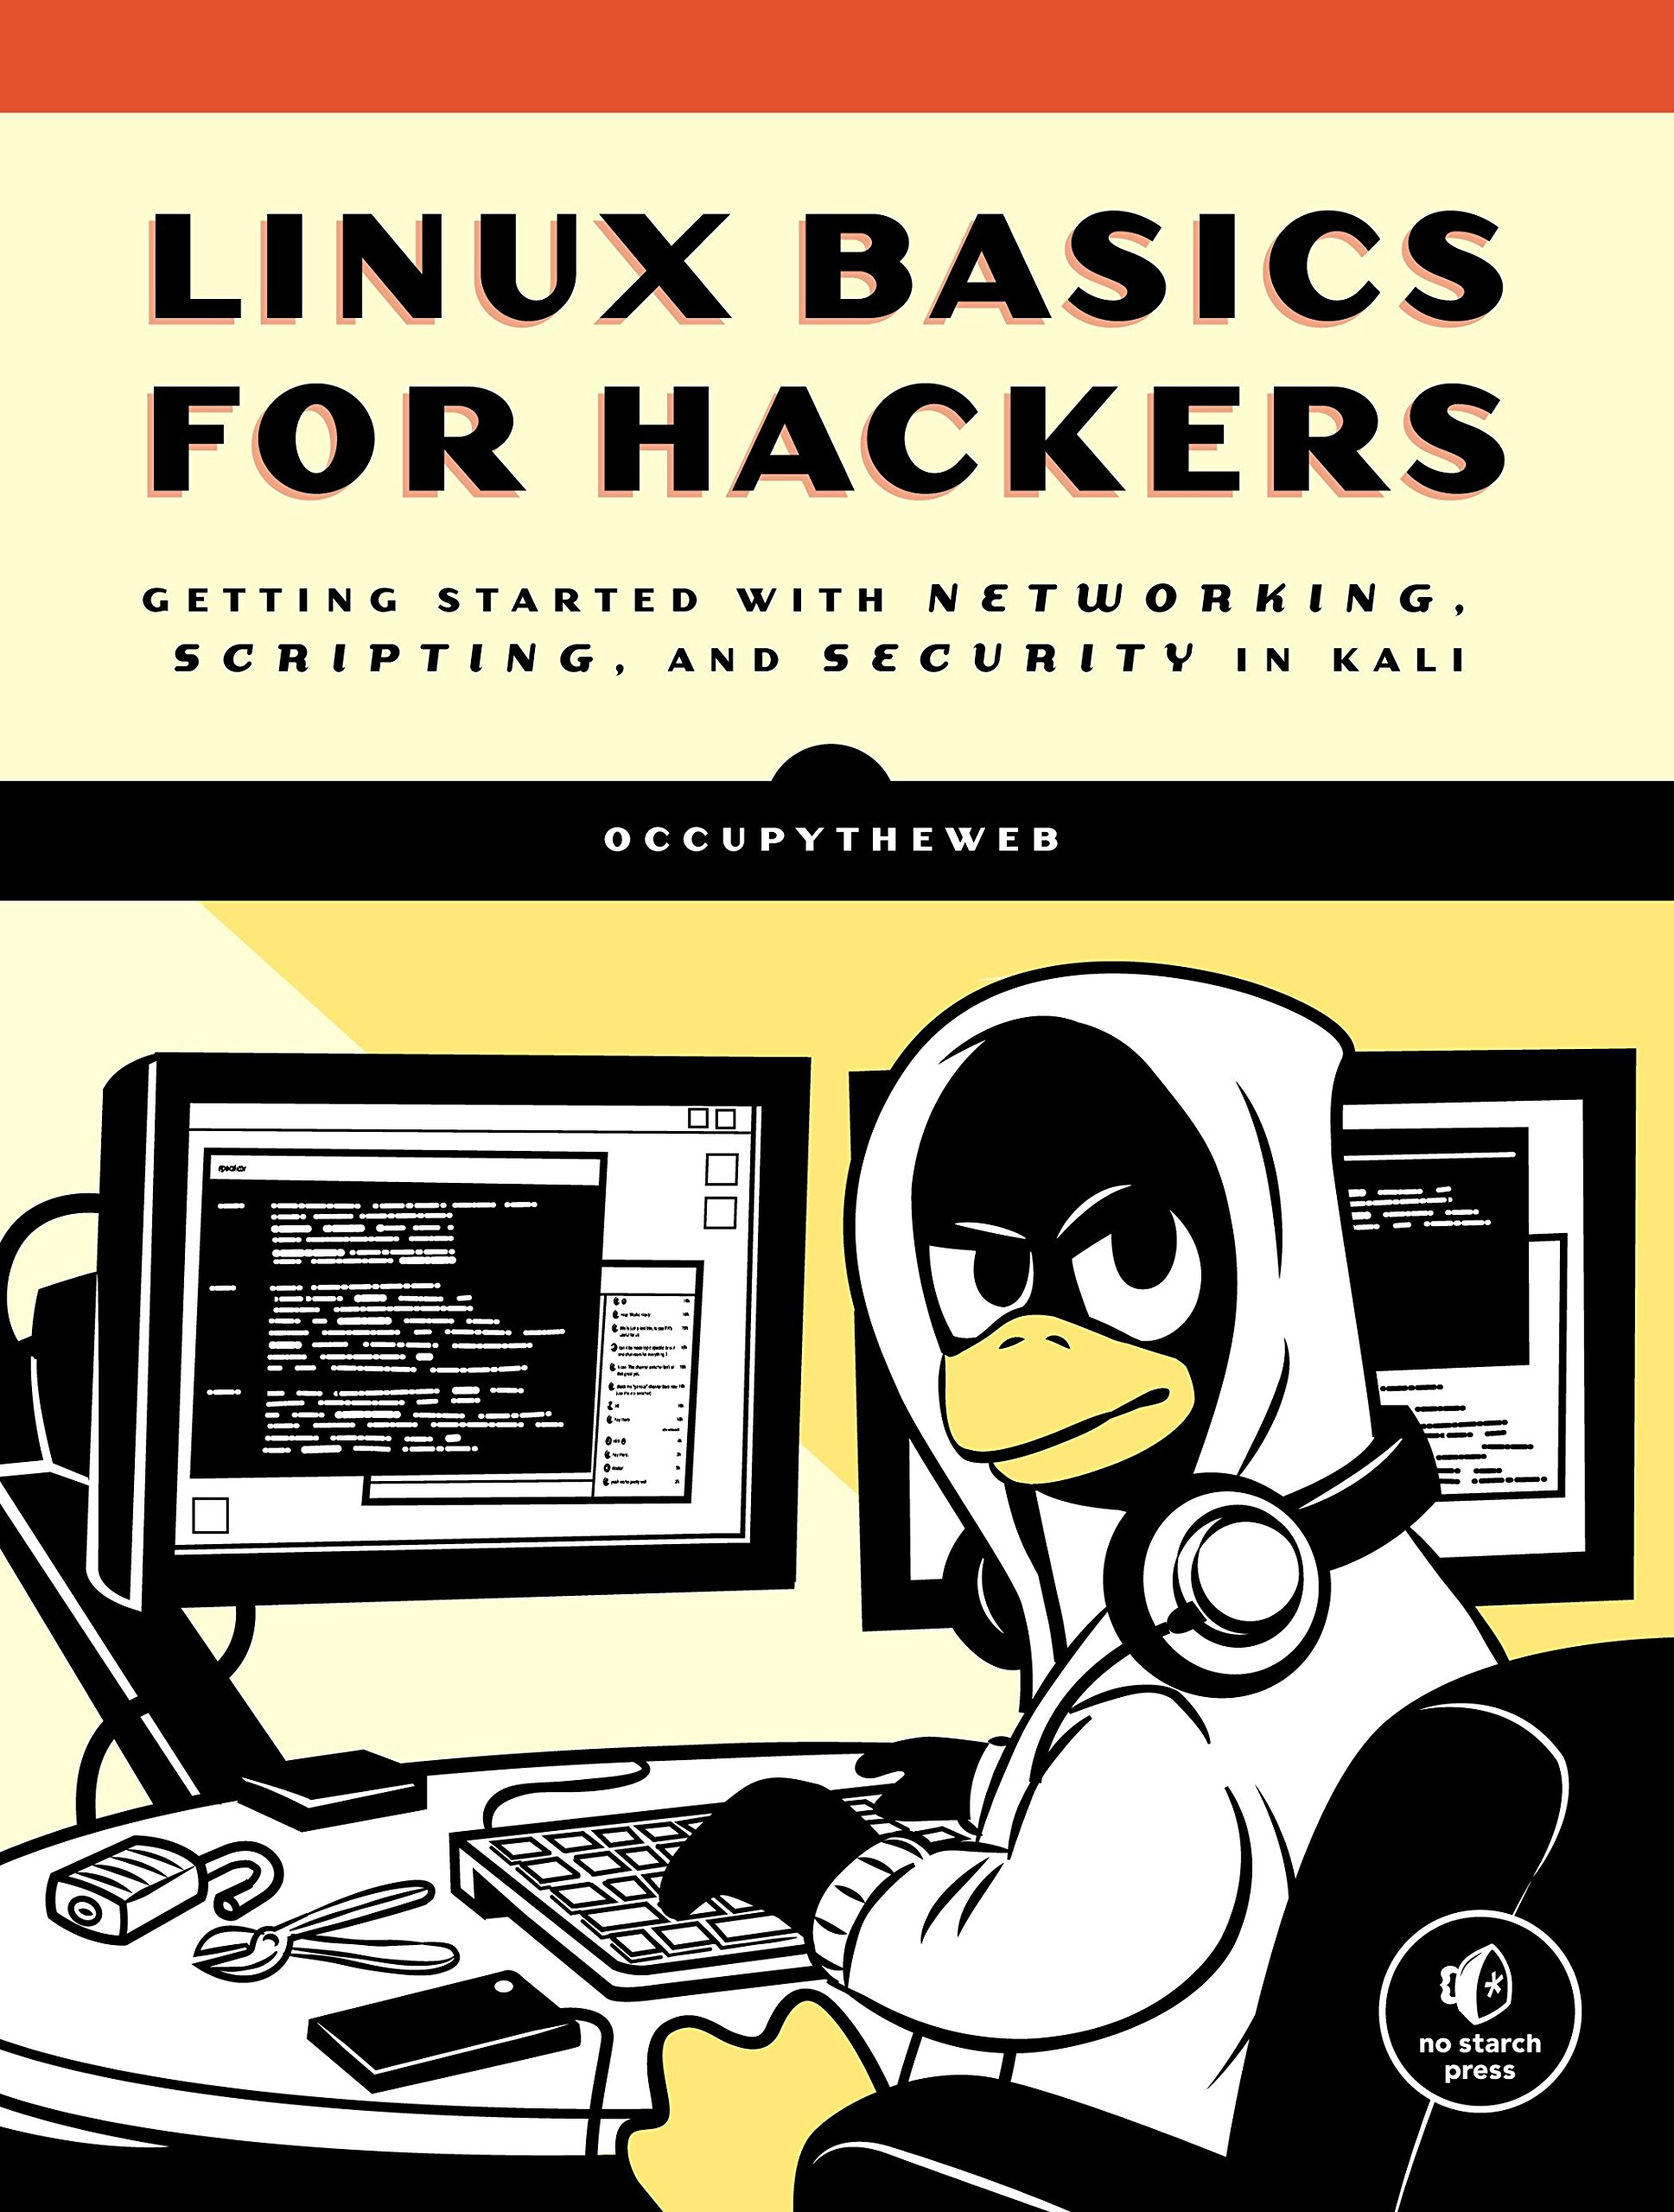 Linux Basics for Hackers: Getting Started with Networking, Scripting, and Security in Kali by No Starch Press